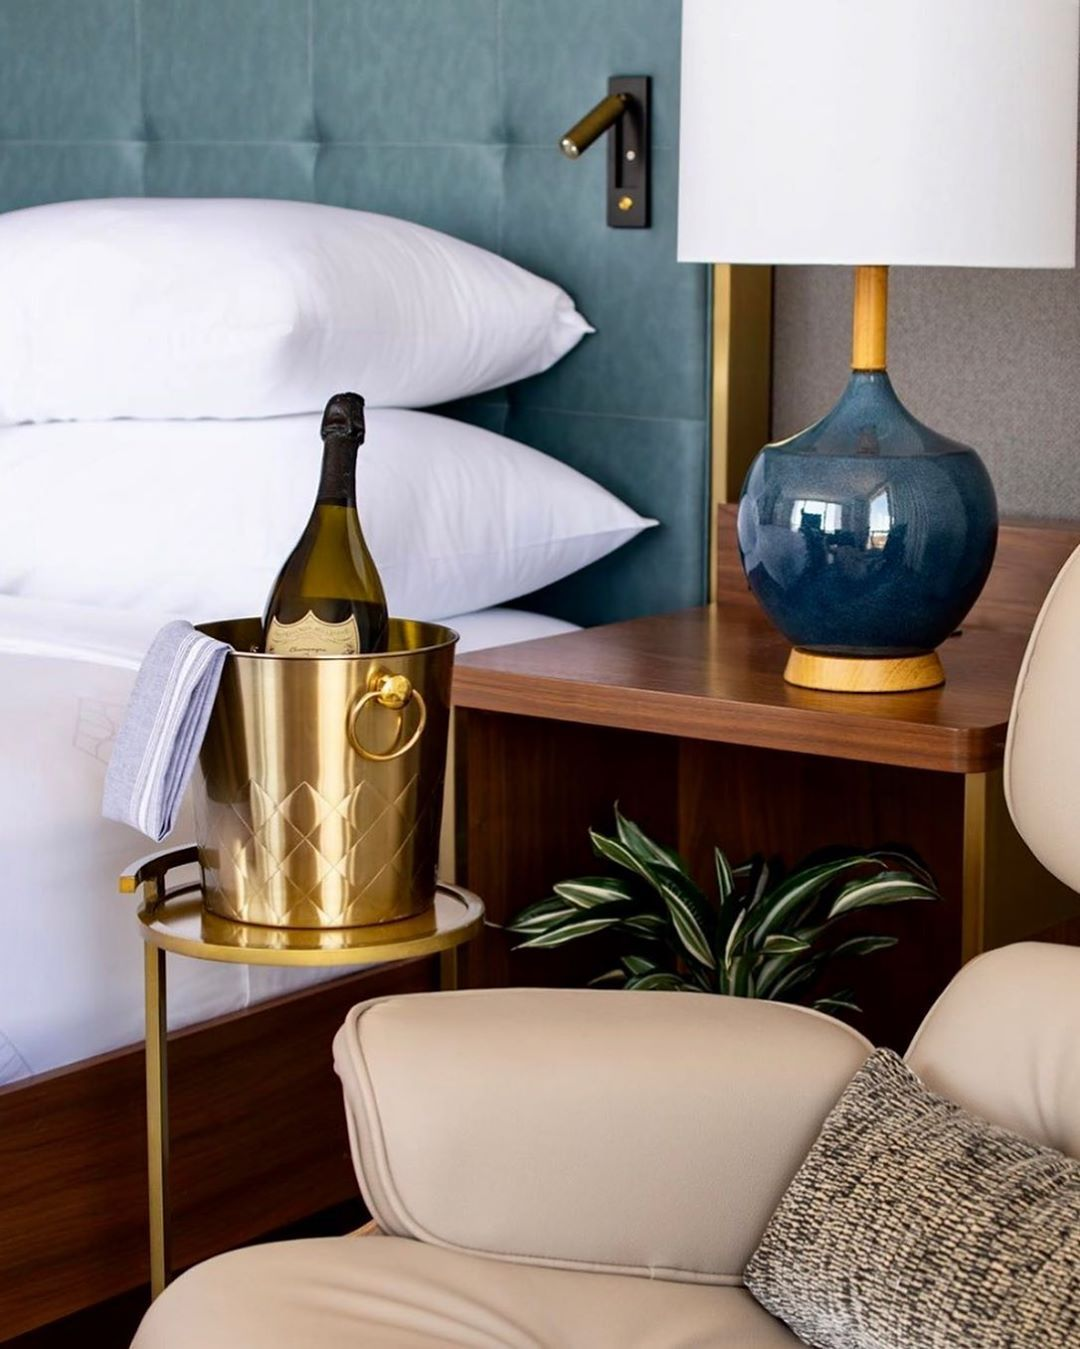 Rest in luxury with a glass of champagne with #BuyNowStayLater. Support Hotel Essex in Chicago by purchasing a hotel bond at a rate of $100 to use at a later date.  Photo by IG: hotel_essex  #travelsoon #wanderlusttravel #hoteldeals #hotelstay #travellinglife #travelenthusiast #adventureseekers